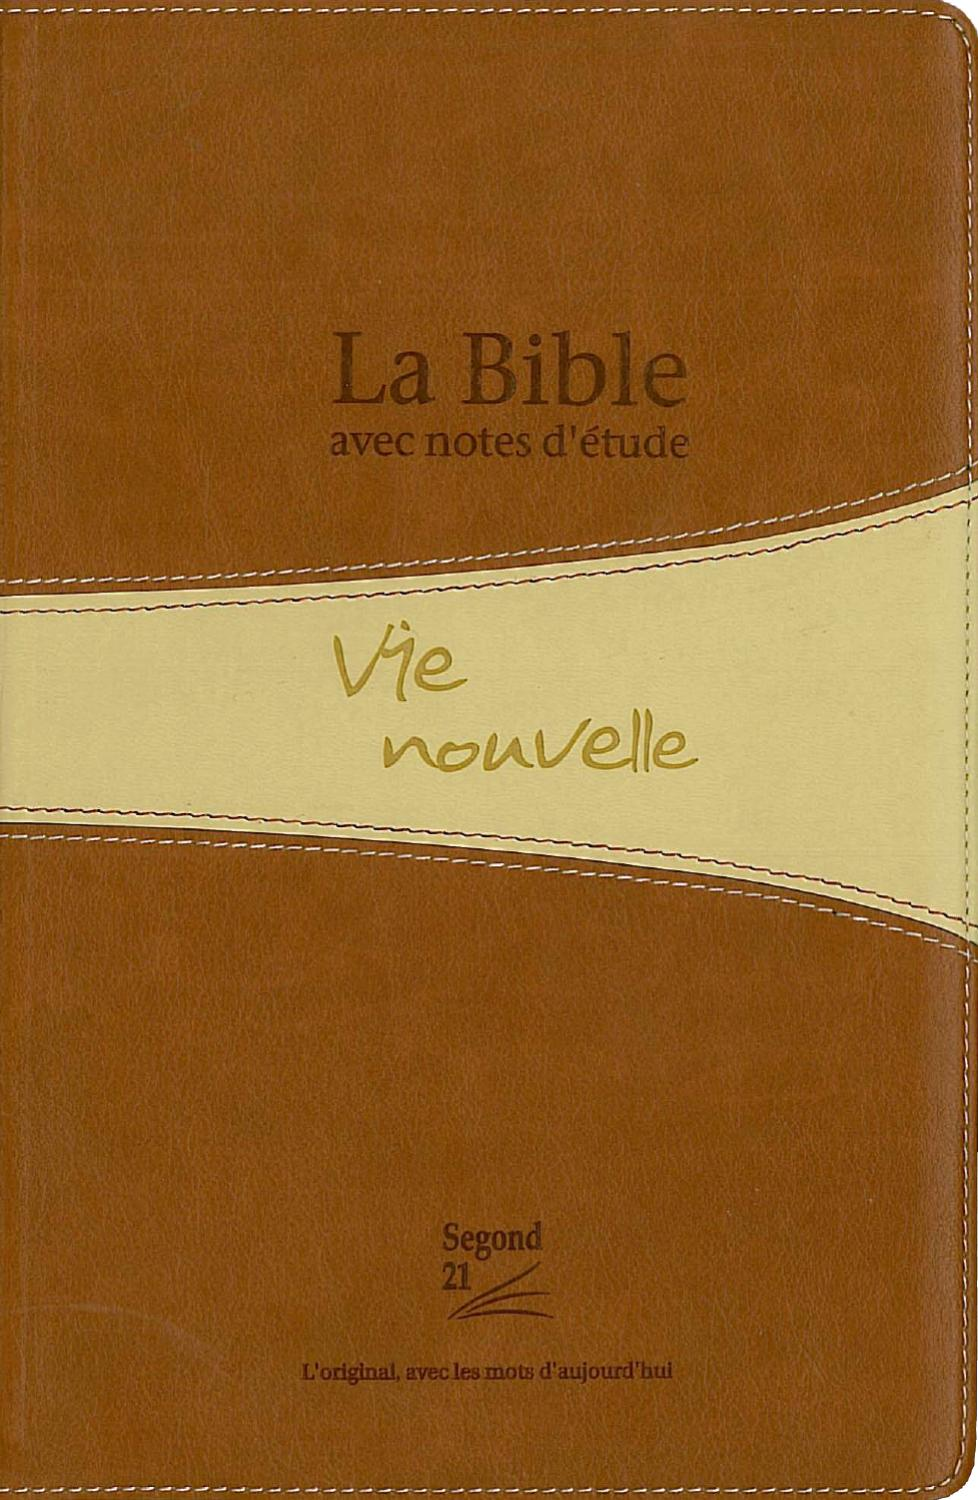 Principes de datation biblique